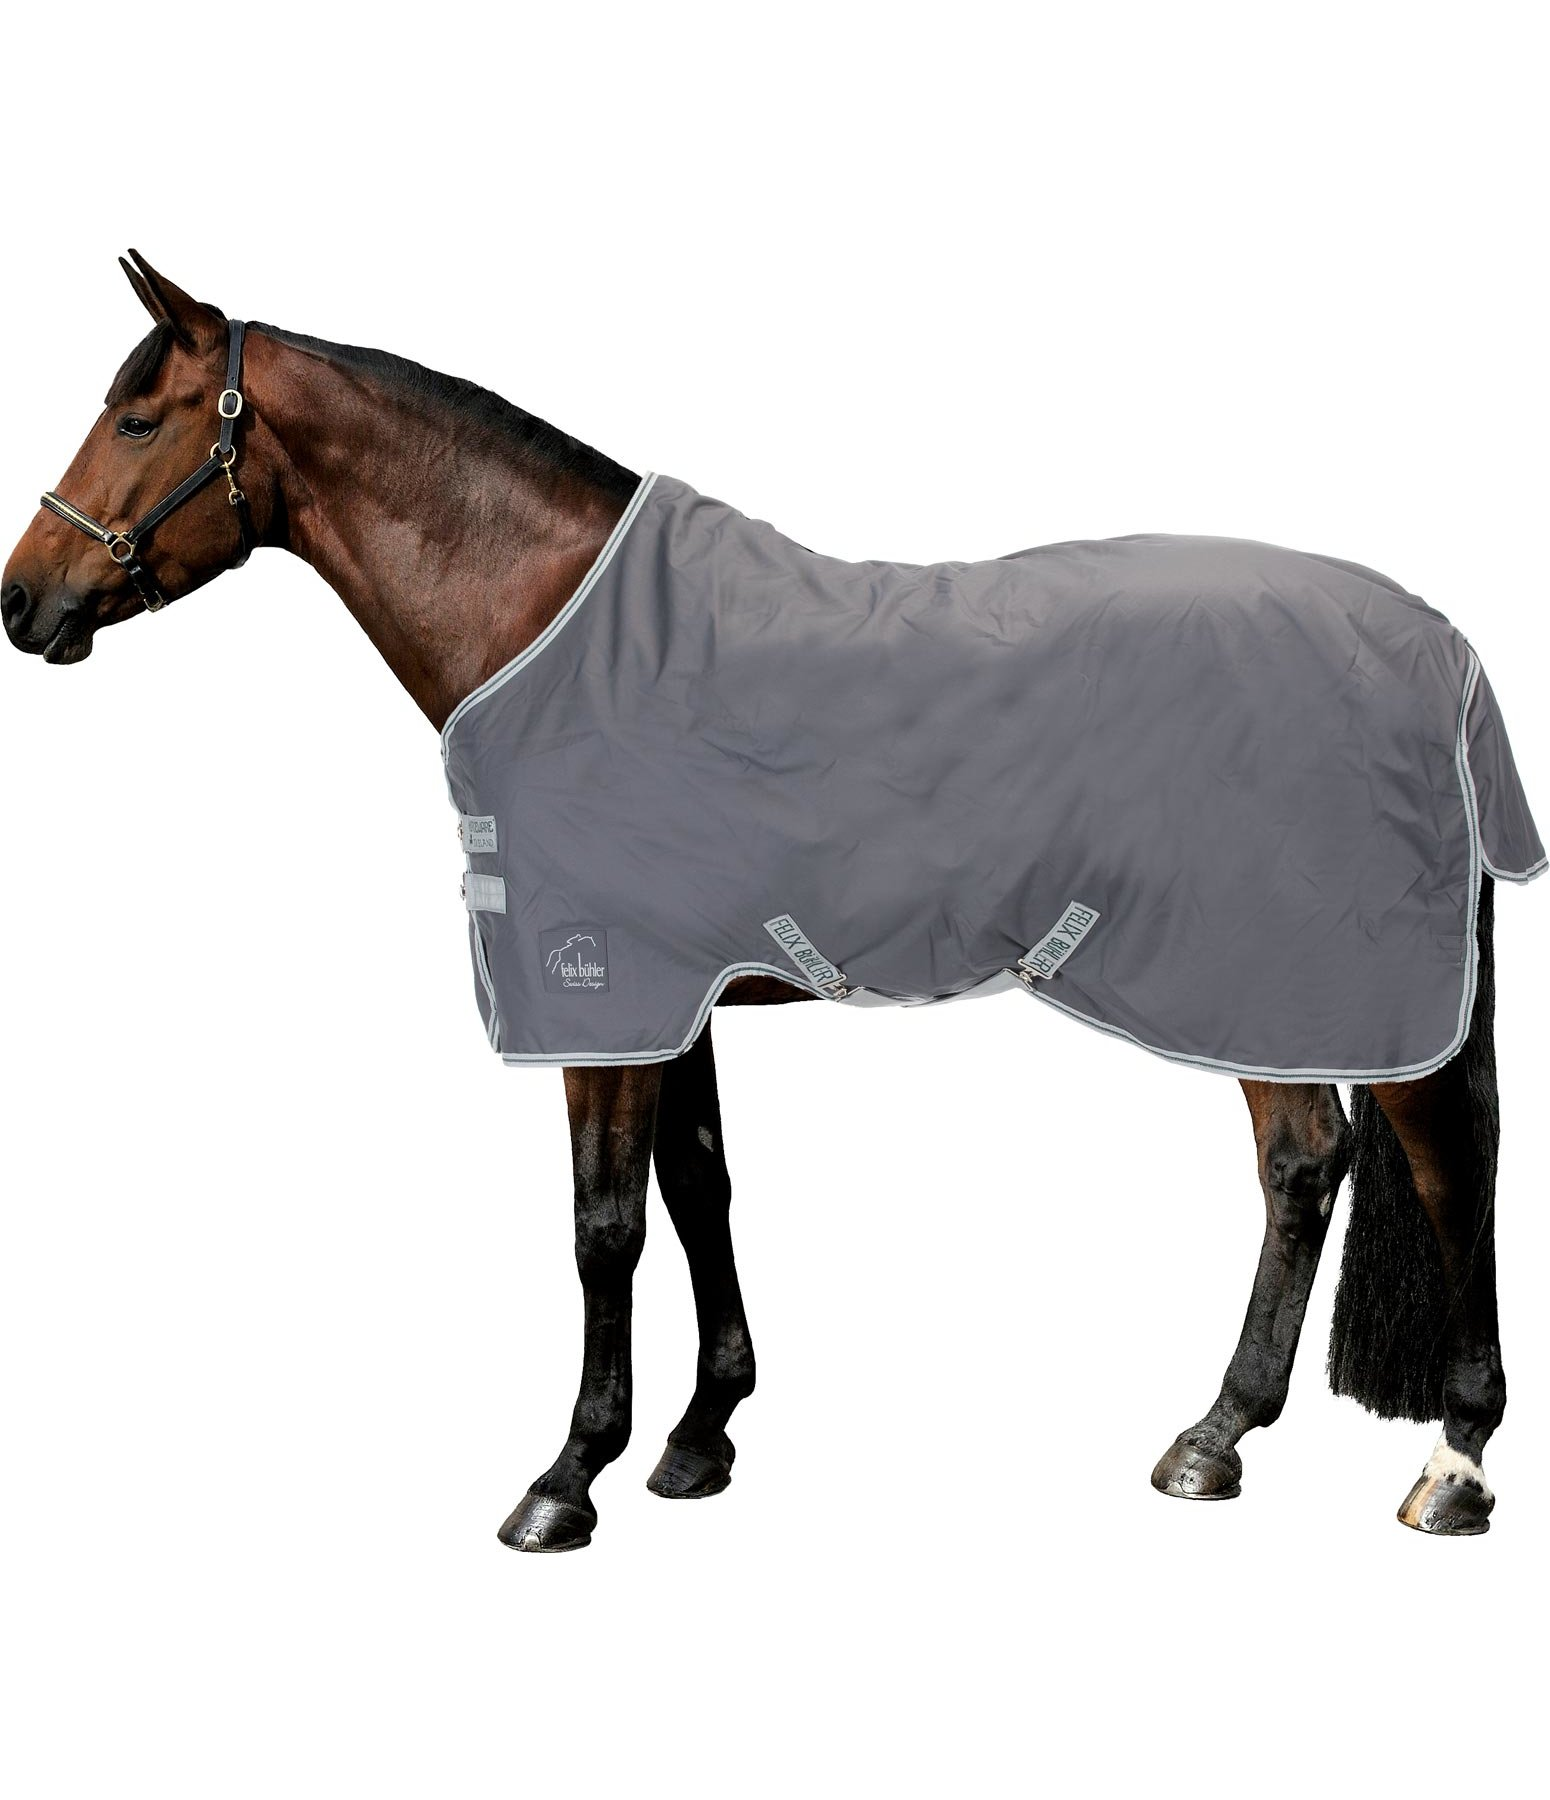 Turnout Rug Special Fleece Lined, 200g